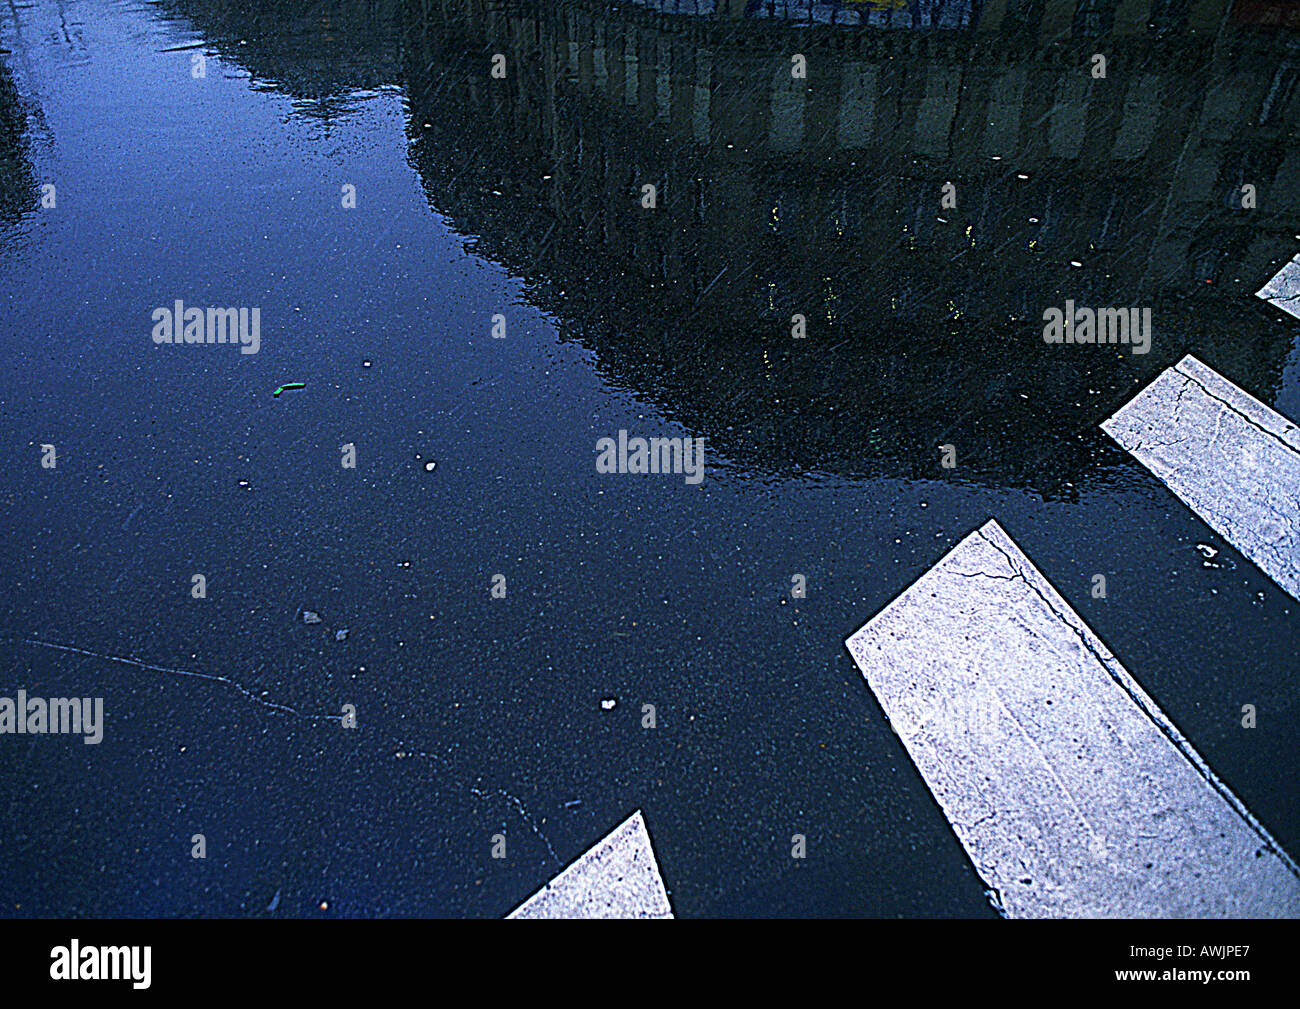 Building reflected on wet ground near cross-walk - Stock Image